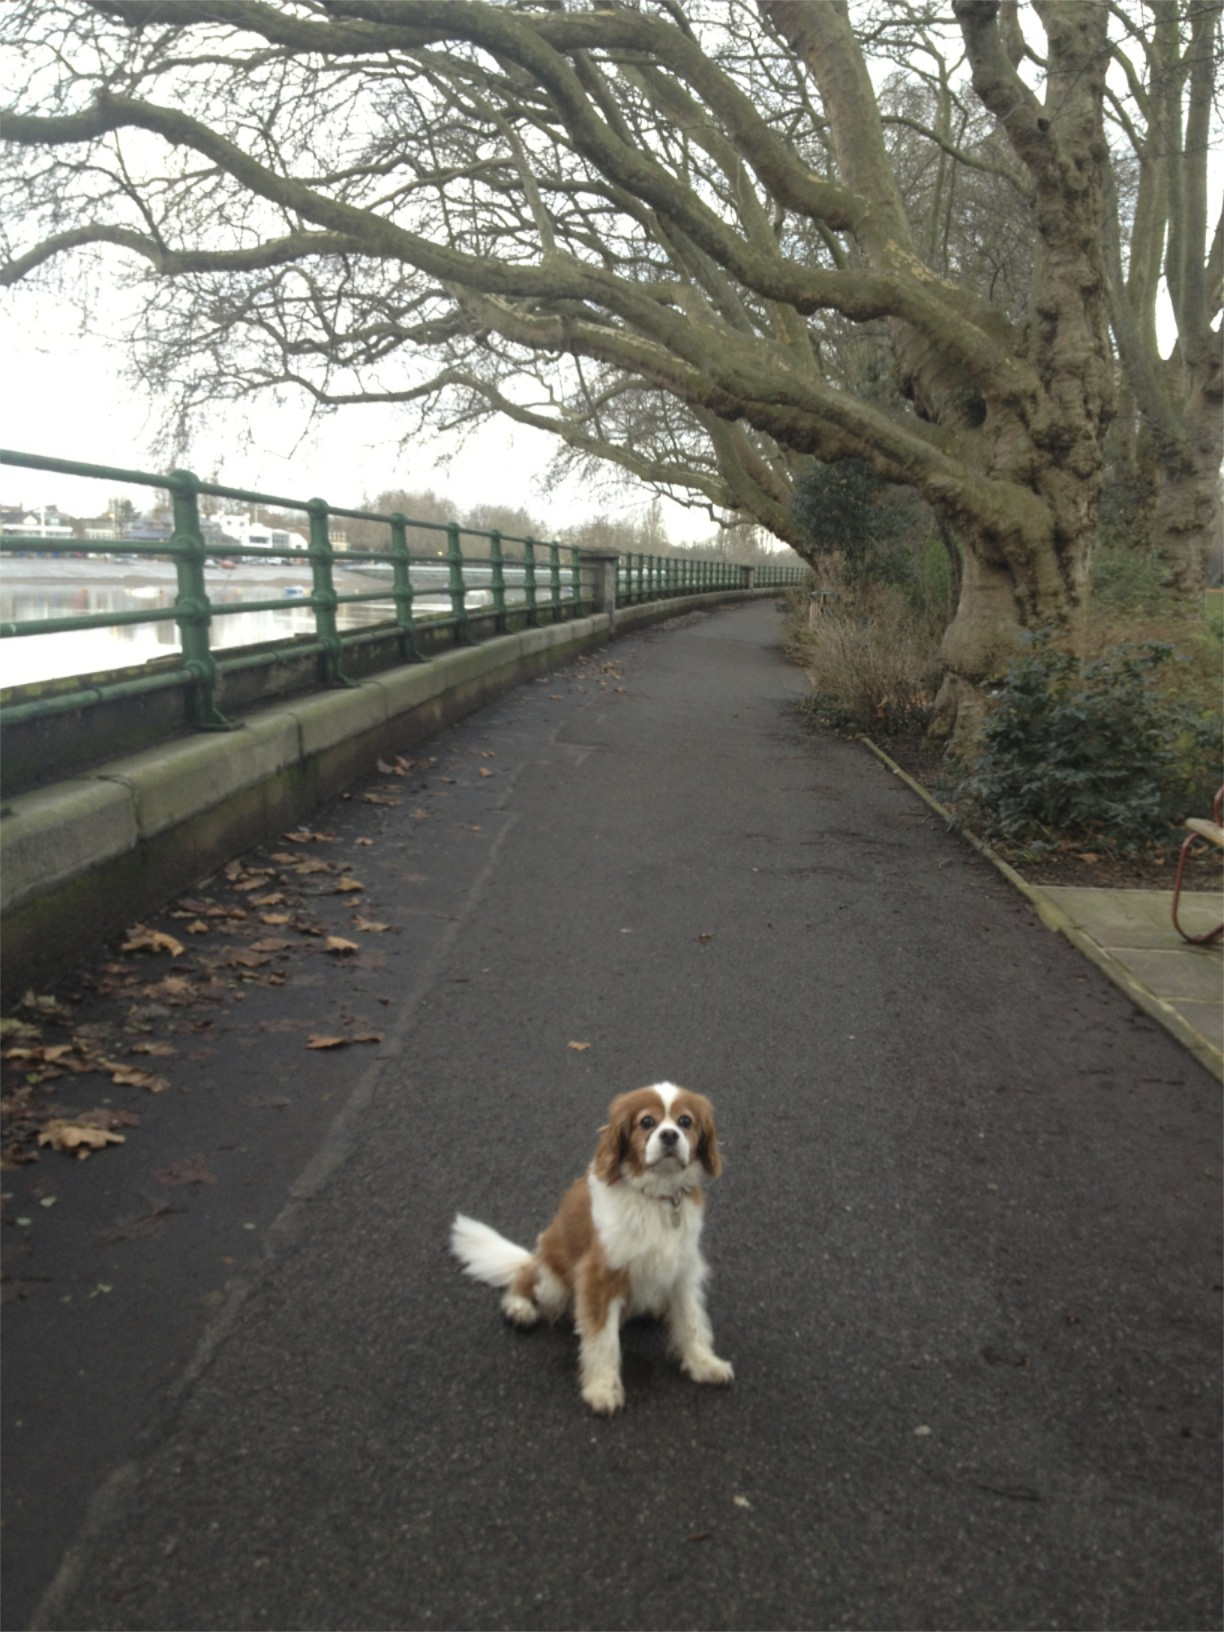 On Boxing Day I took one of the most loyal friends I have out for a long walk